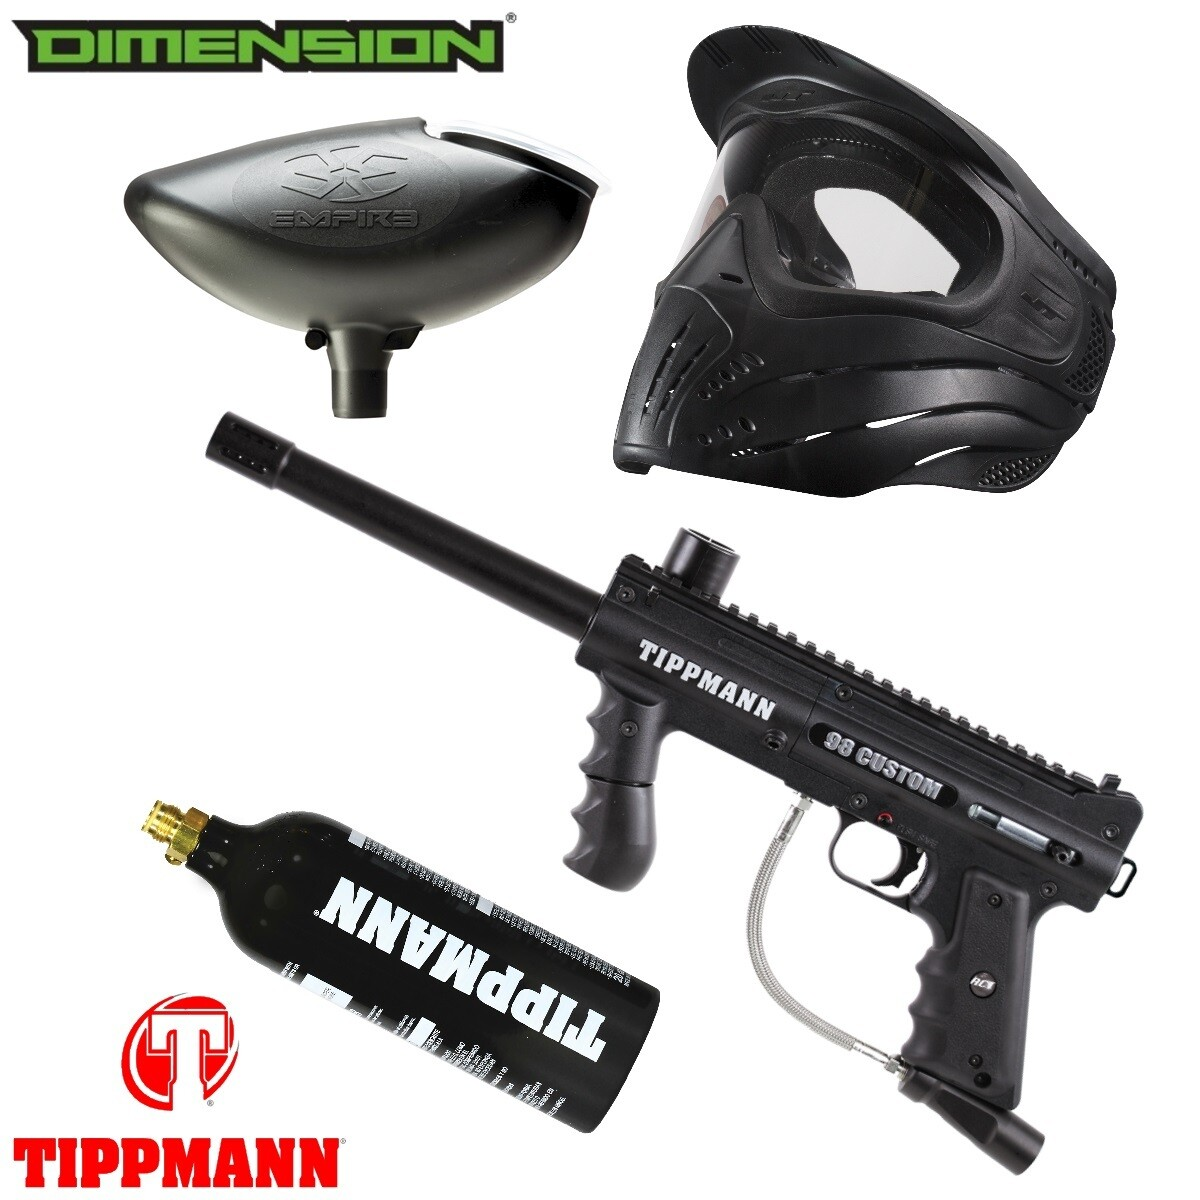 Marker Package - Tippmann 98 CUSTOM PS ULTRA BASIC Marker / 200 Rnd. Loader / Premise Mask Single / 20oz Co2 Tank